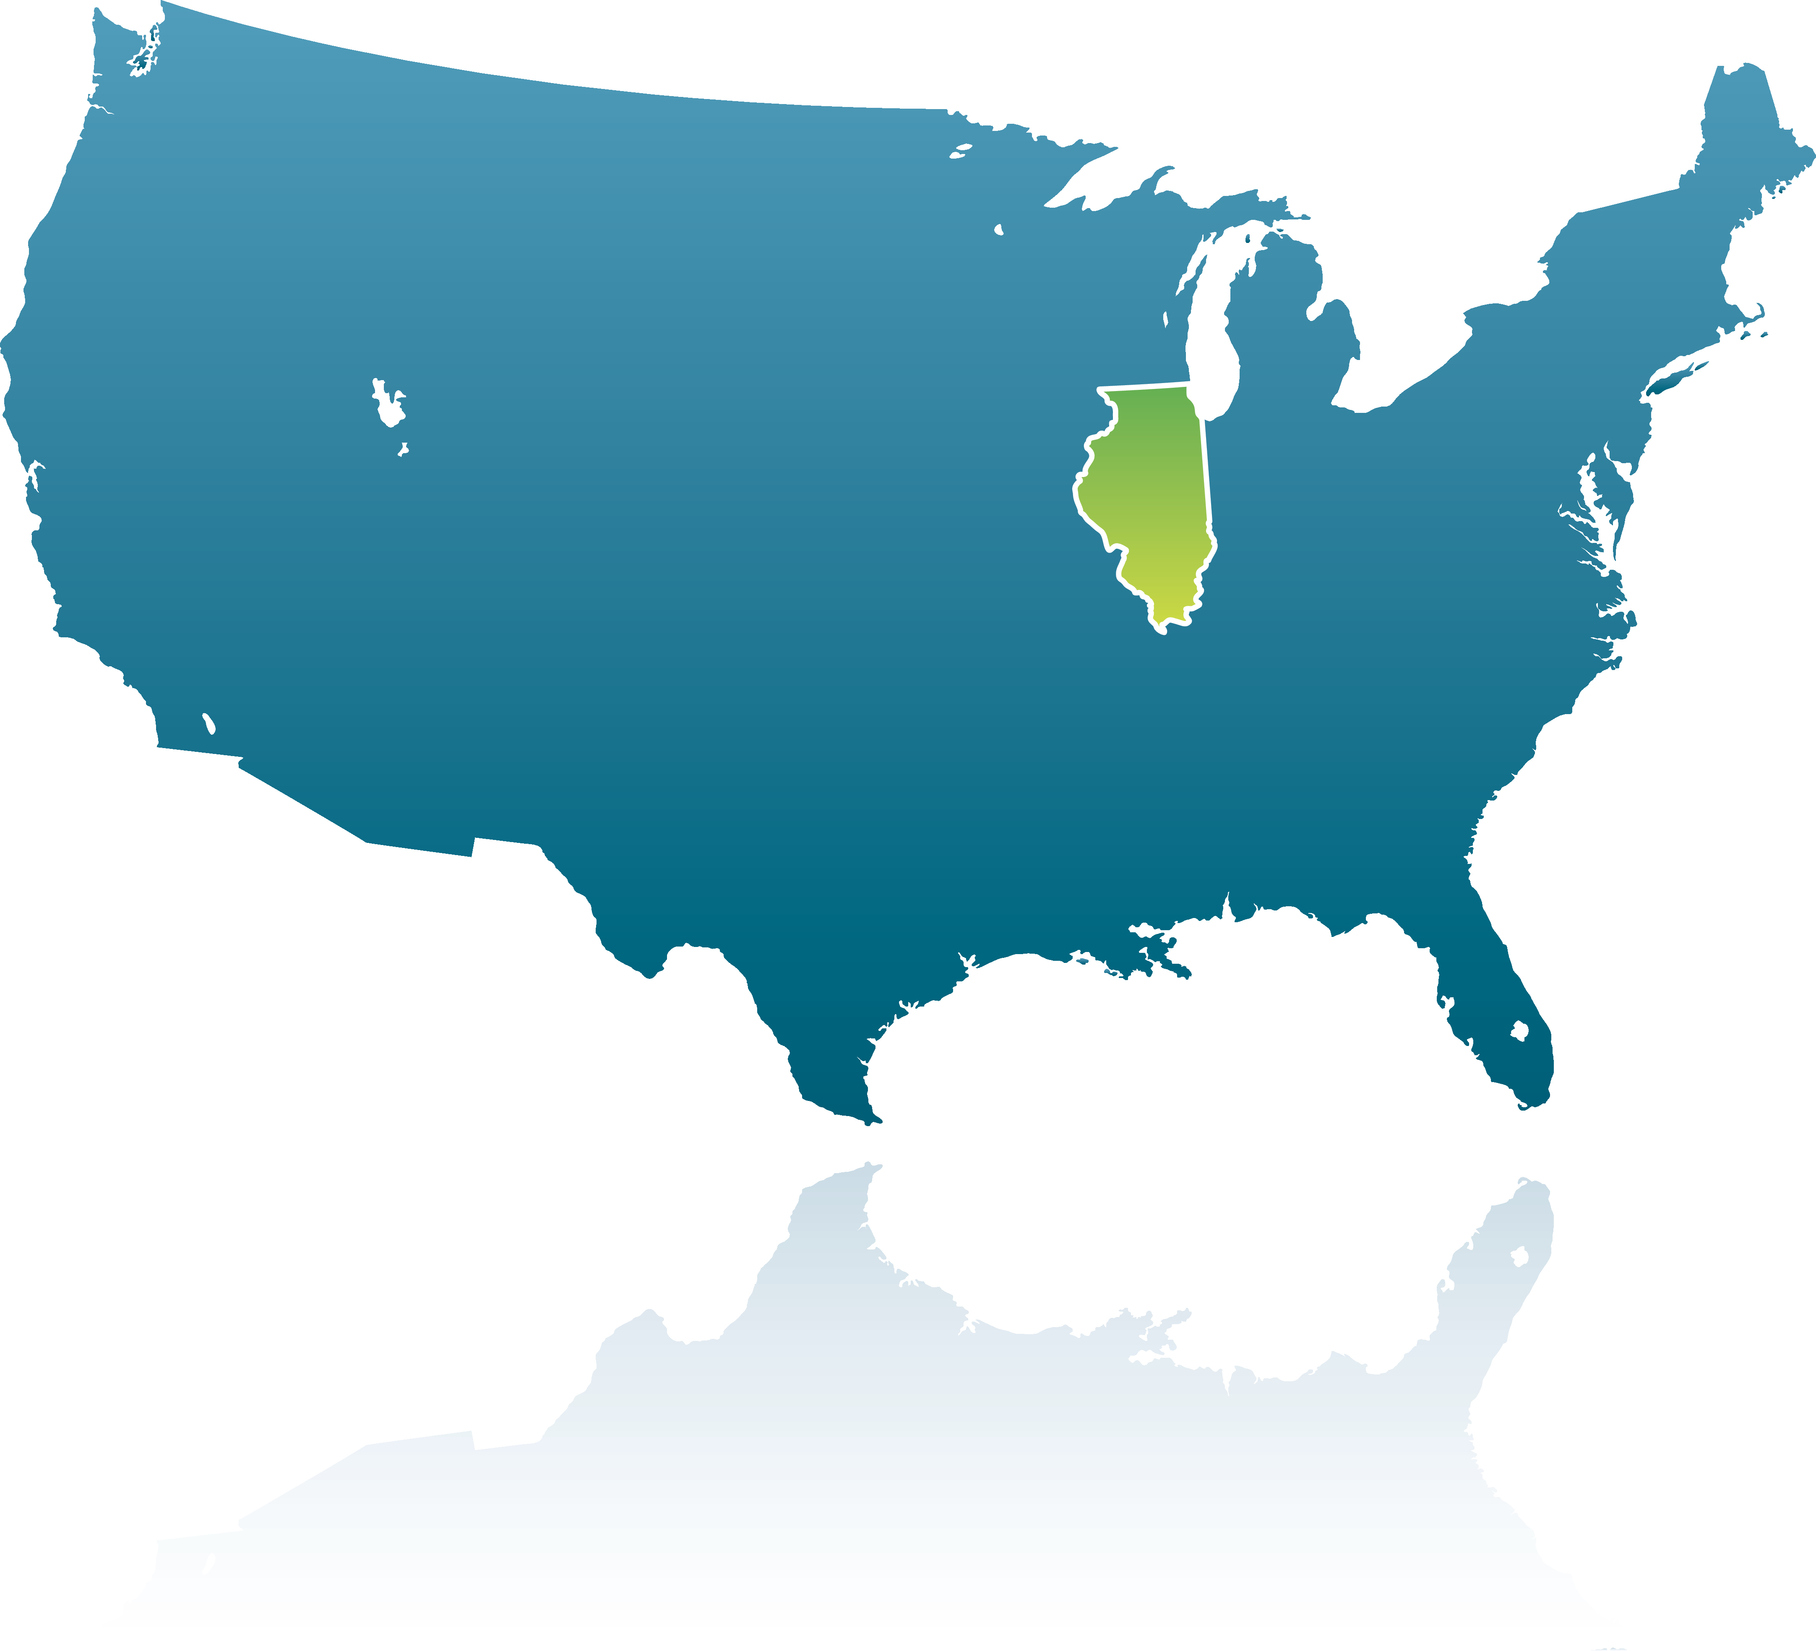 United States Maps: Illinois